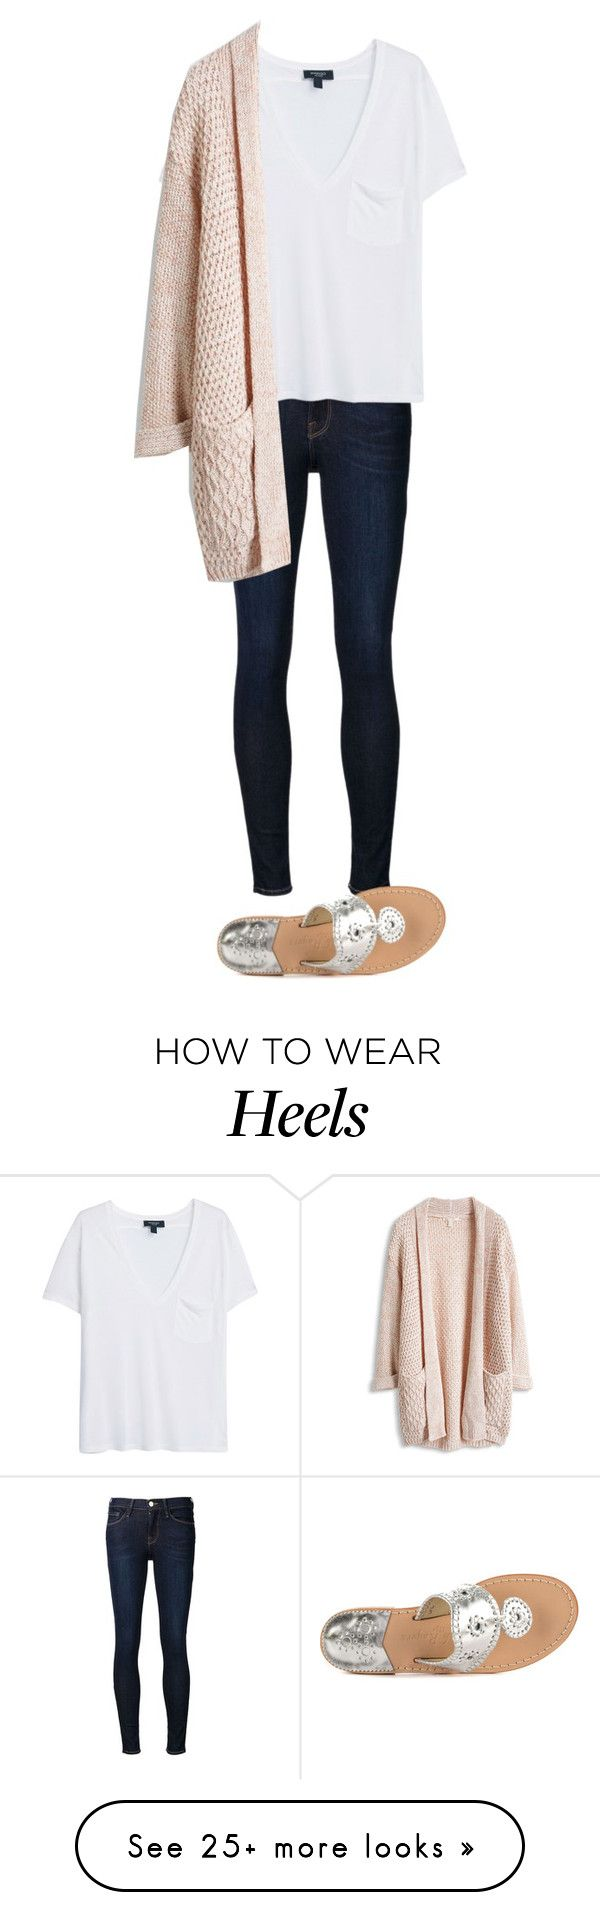 """ootd"" by smileyavenuegirl on Polyvore featuring Frame Denim, MANGO and Jack Rogers"